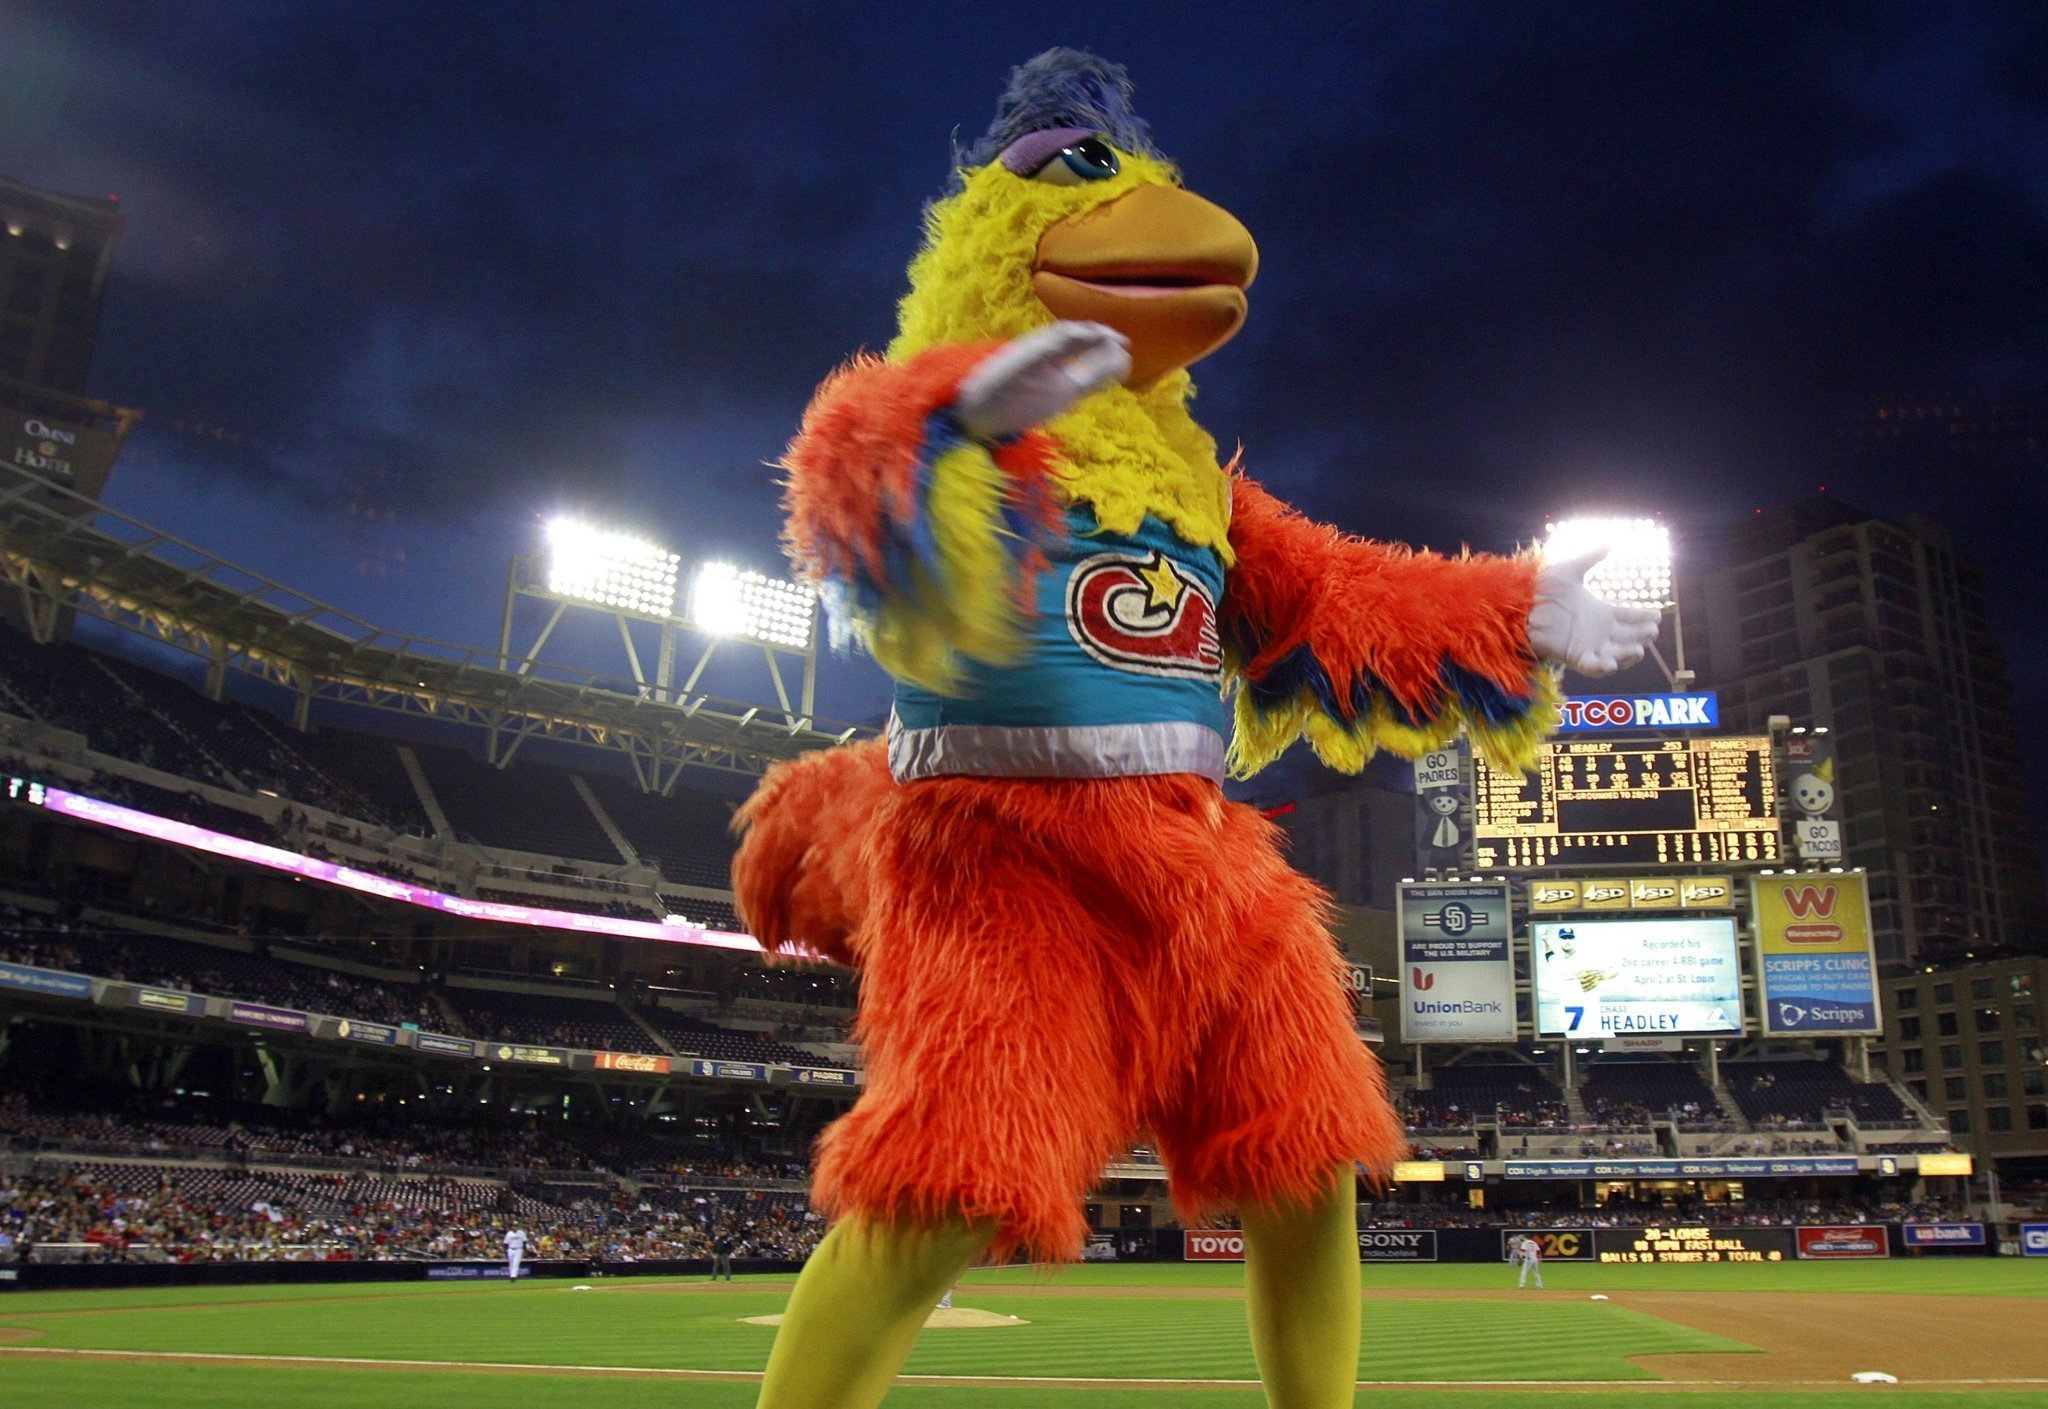 The Chicken S Still Kicking The San Diego Union Tribune